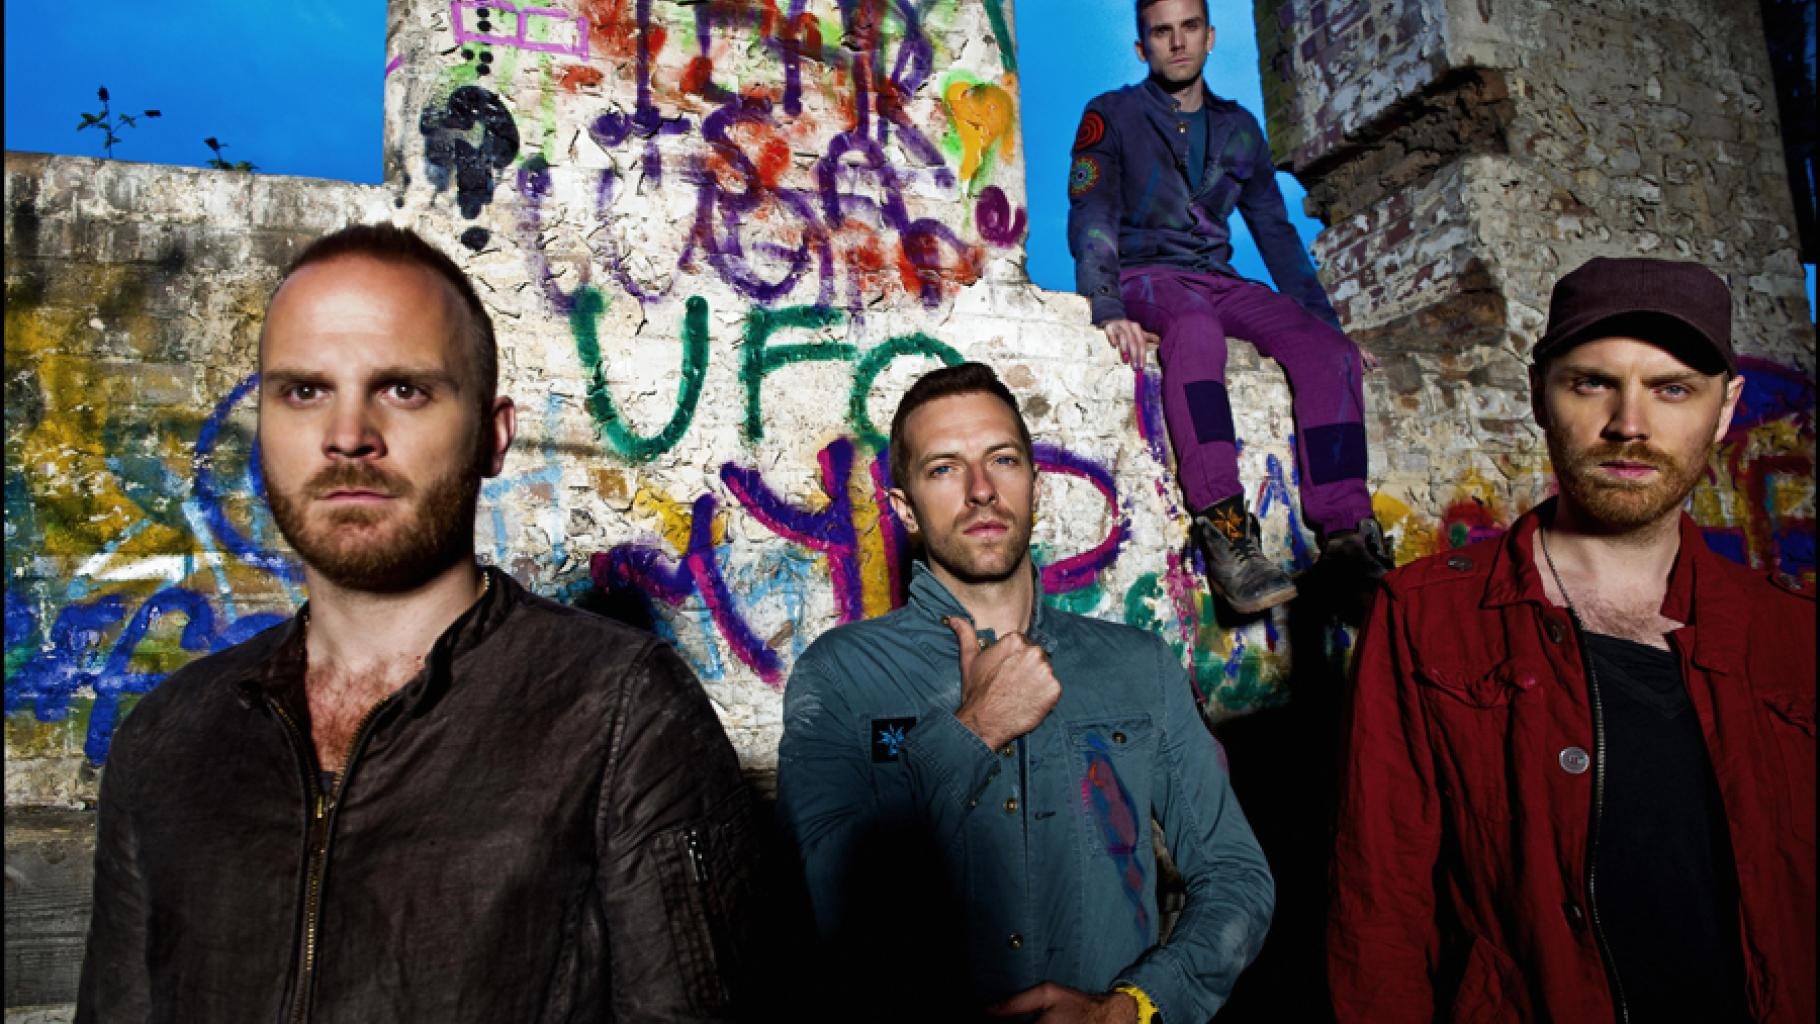 Oxfam on Tour Coldplay 2017 Registrierung